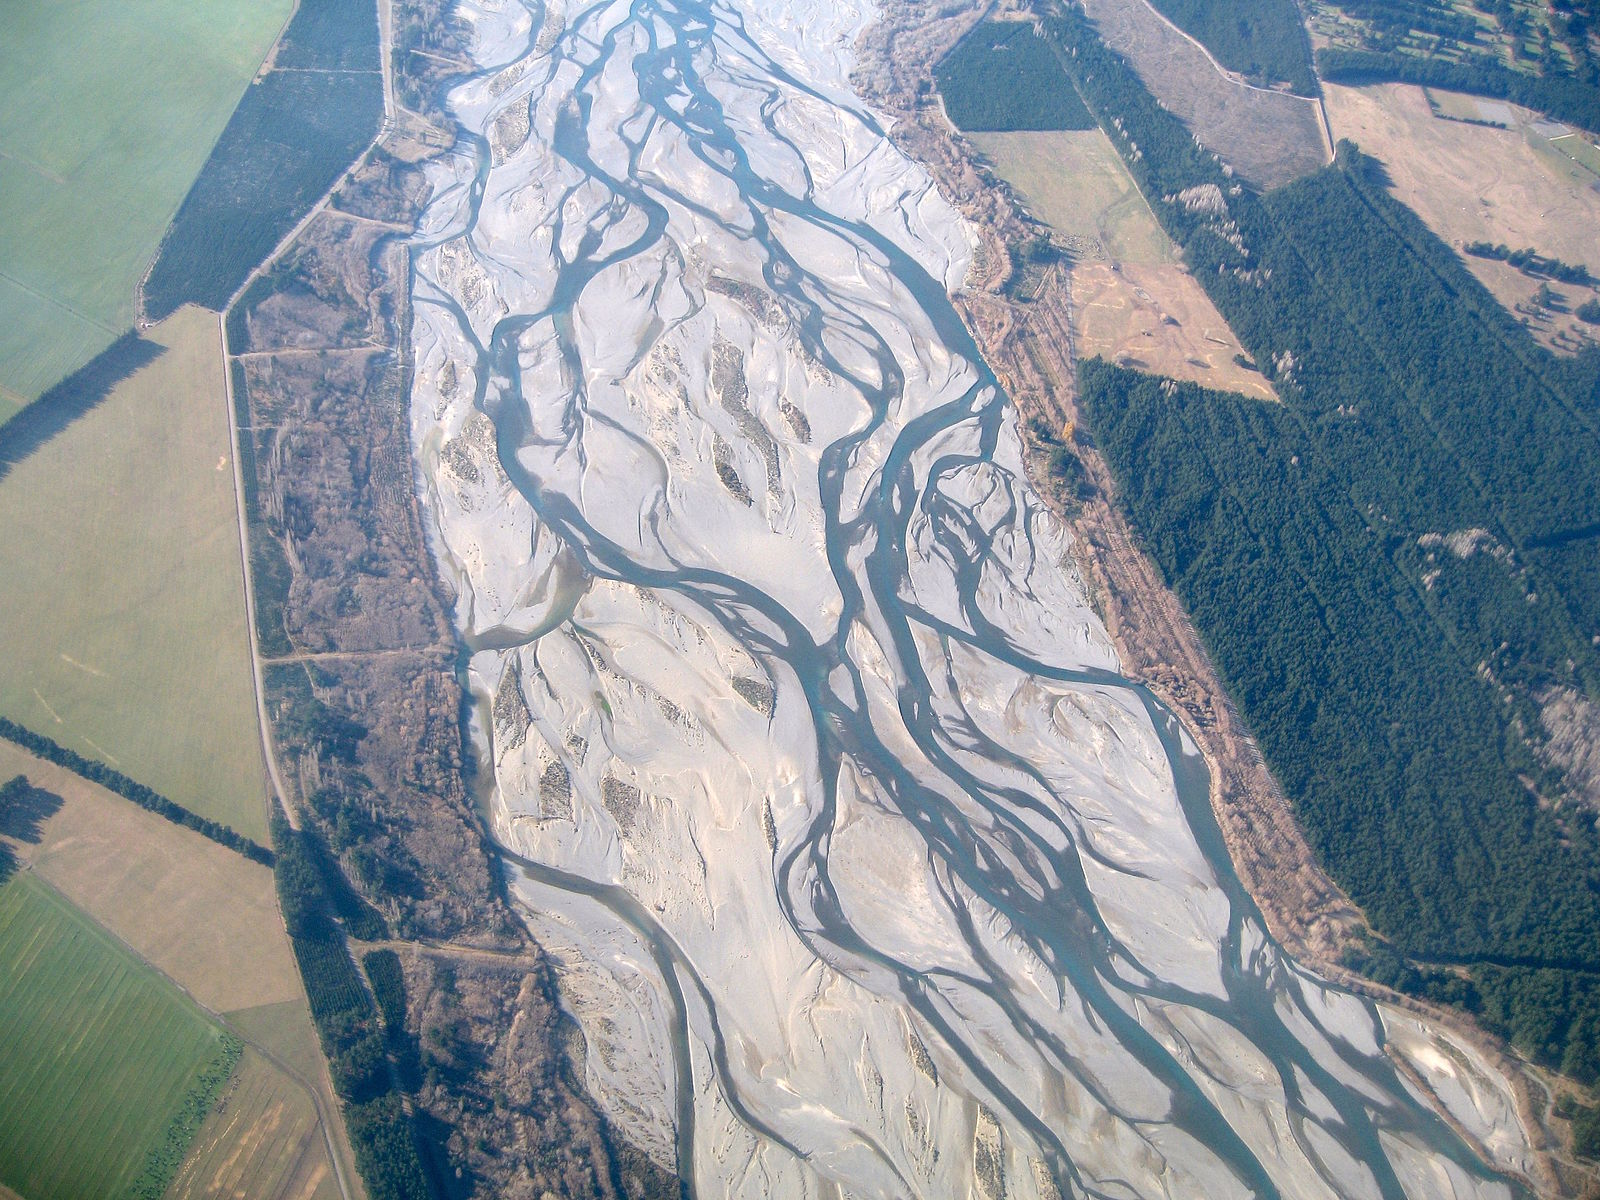 The river has many inter-braided channels.